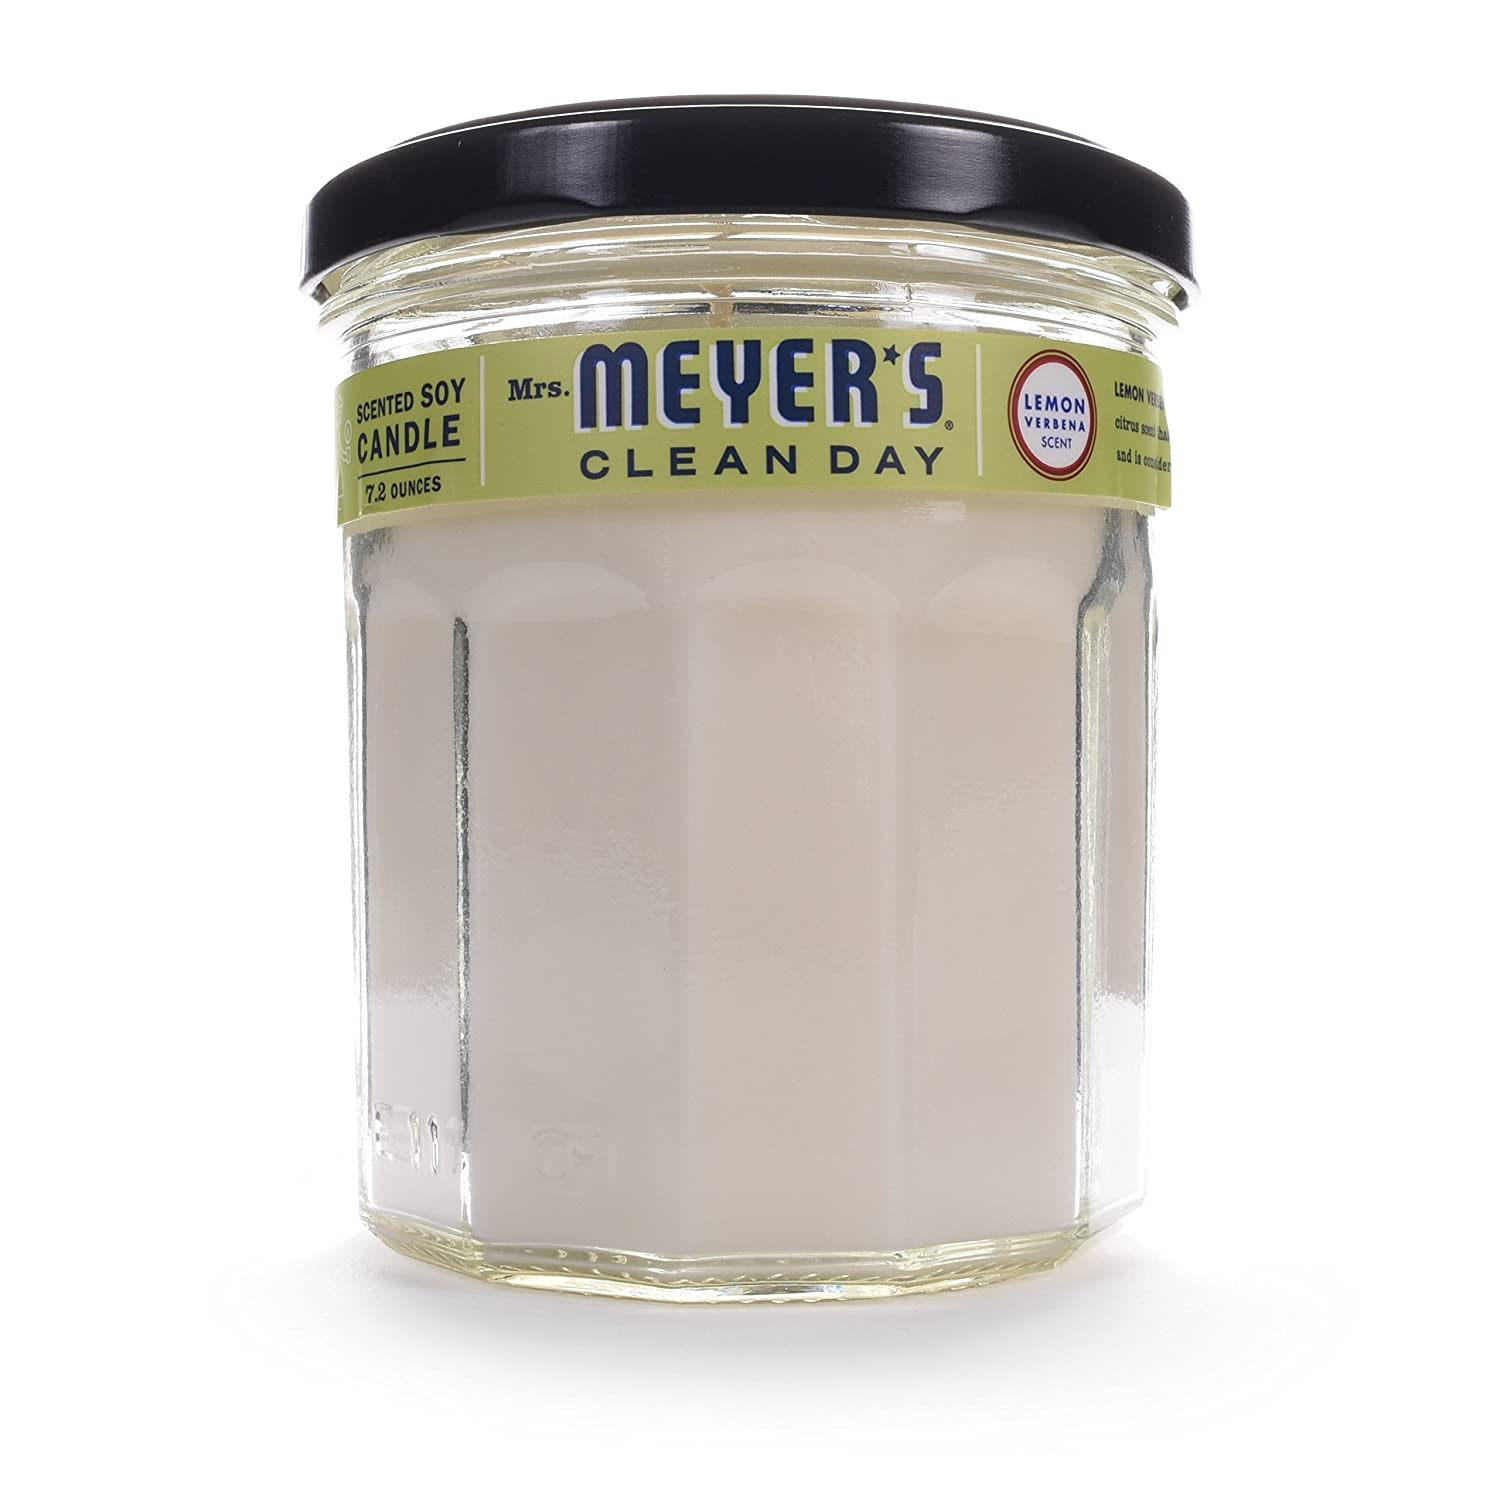 Mrs. Meyer's Soy Candle - Lemon Verbena - 7.2 oz Candle Honest Green thomaswi